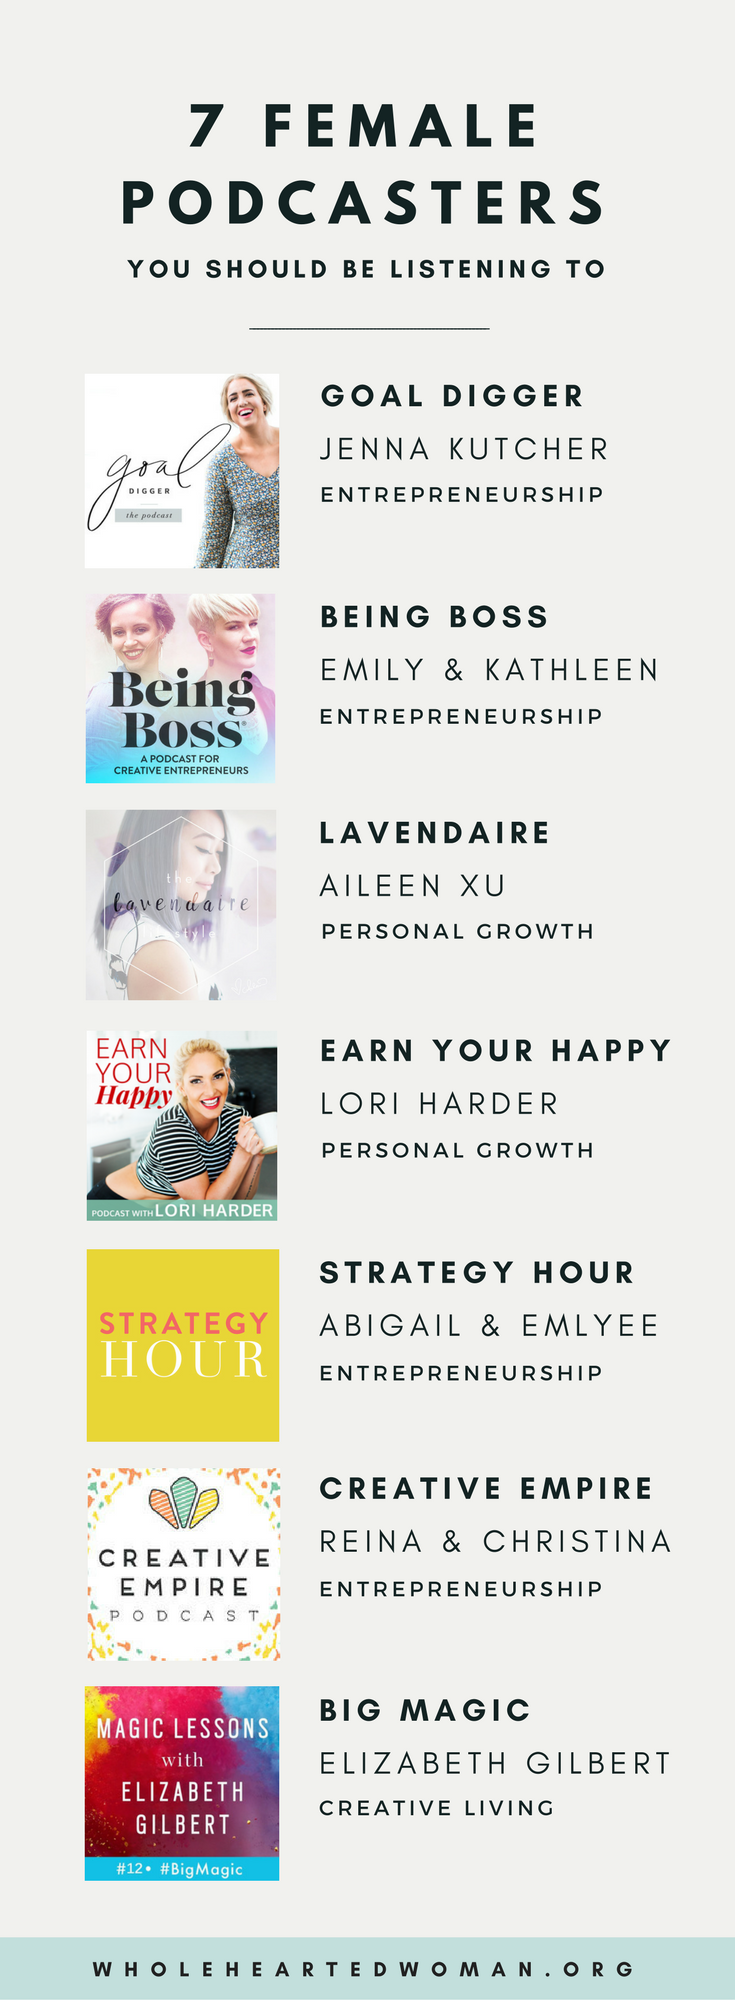 7 Female Podcasters You Should Be Listening To | Personal Growth & Development | Life Advice | Entrepreneurship | Podcasts